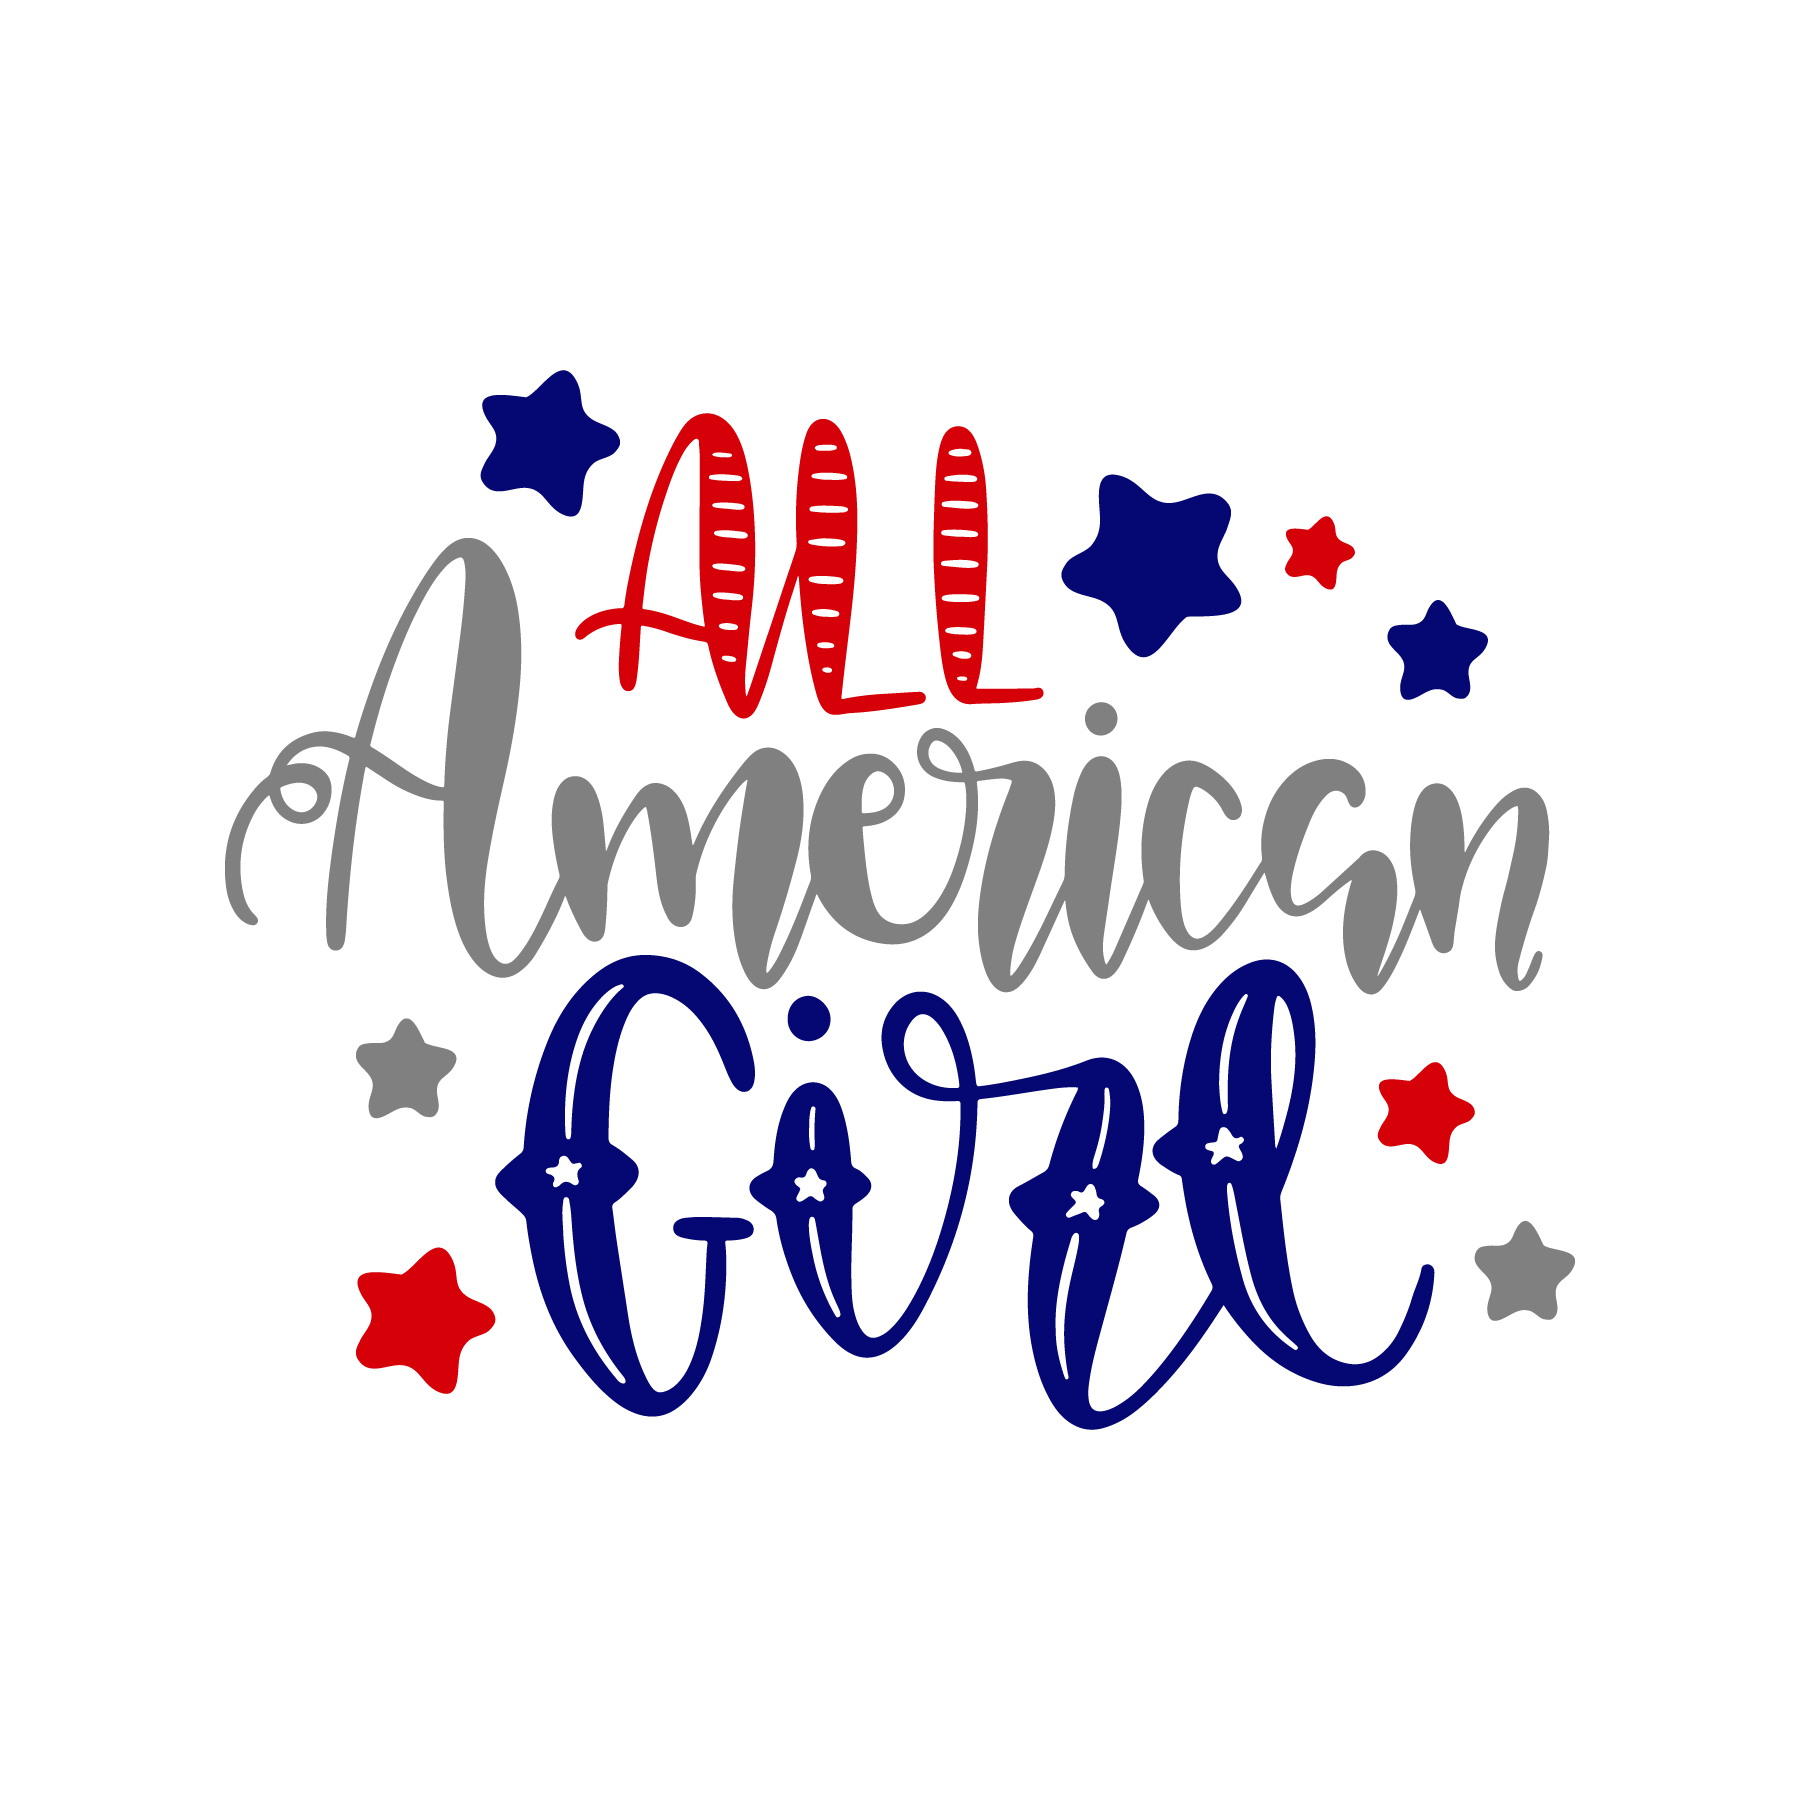 Sunglass svg patriotic. All american girl commercial